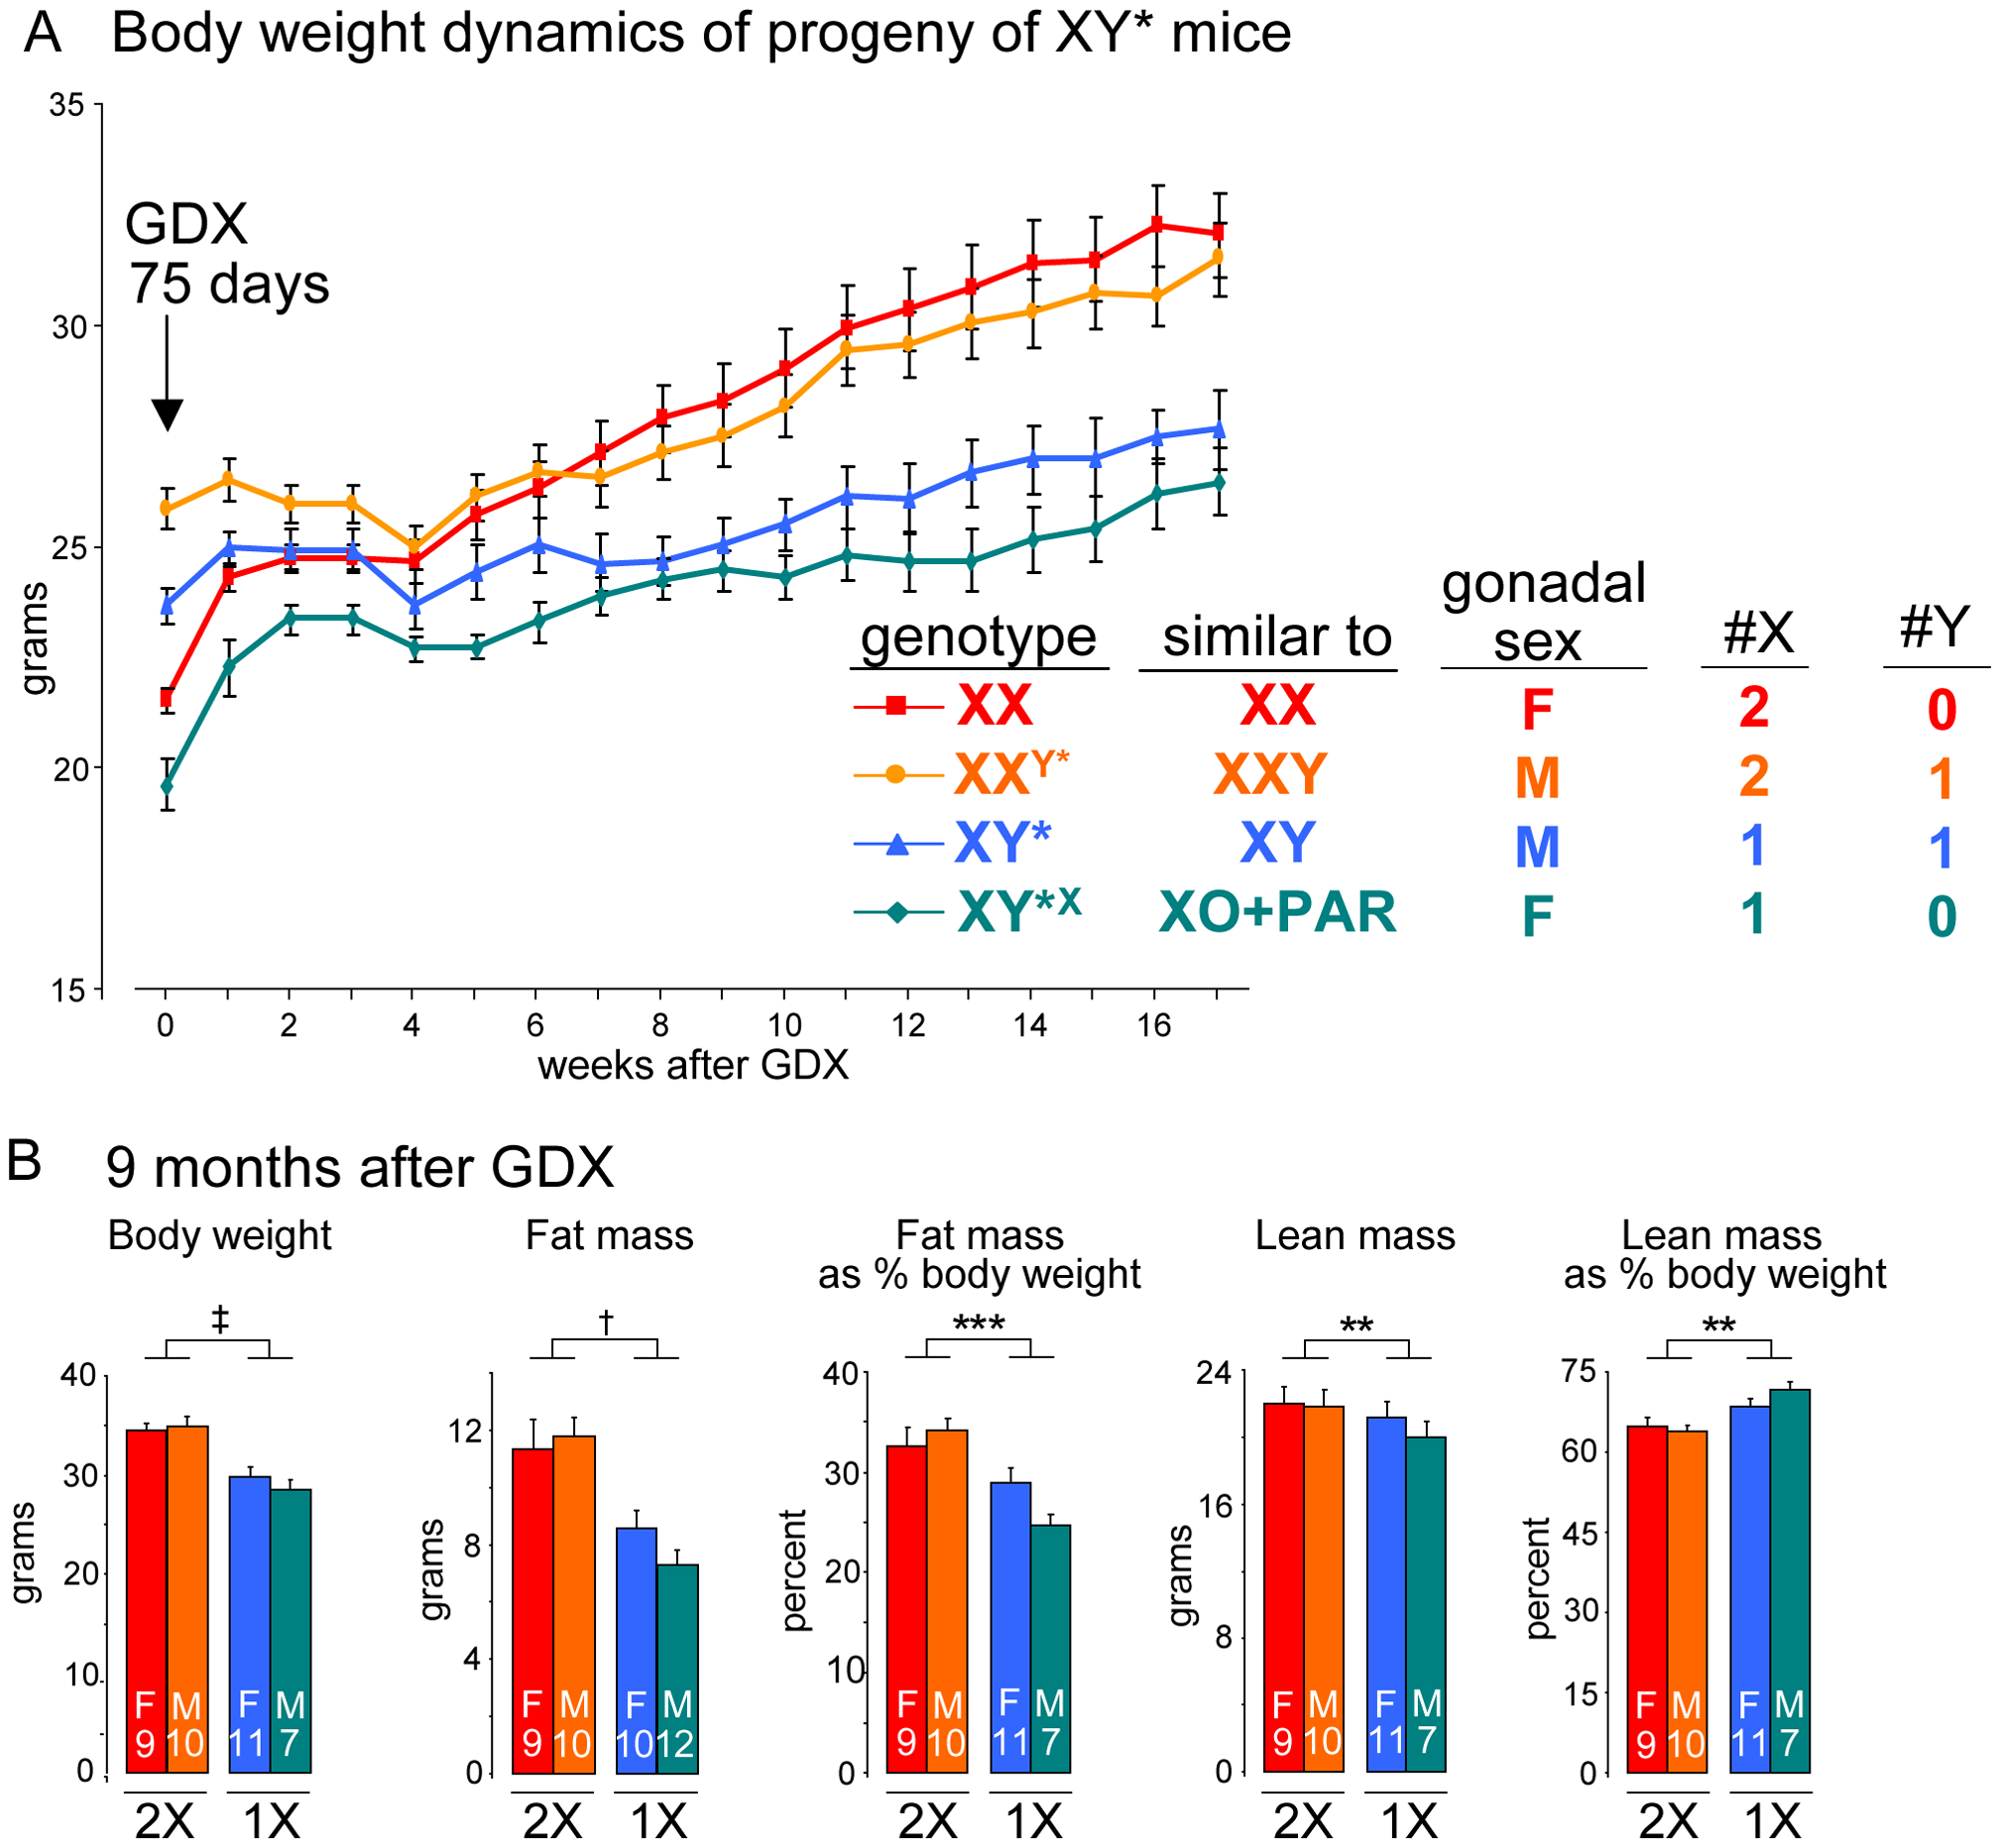 The number of X chromosomes determines differences in body weight and adiposity.